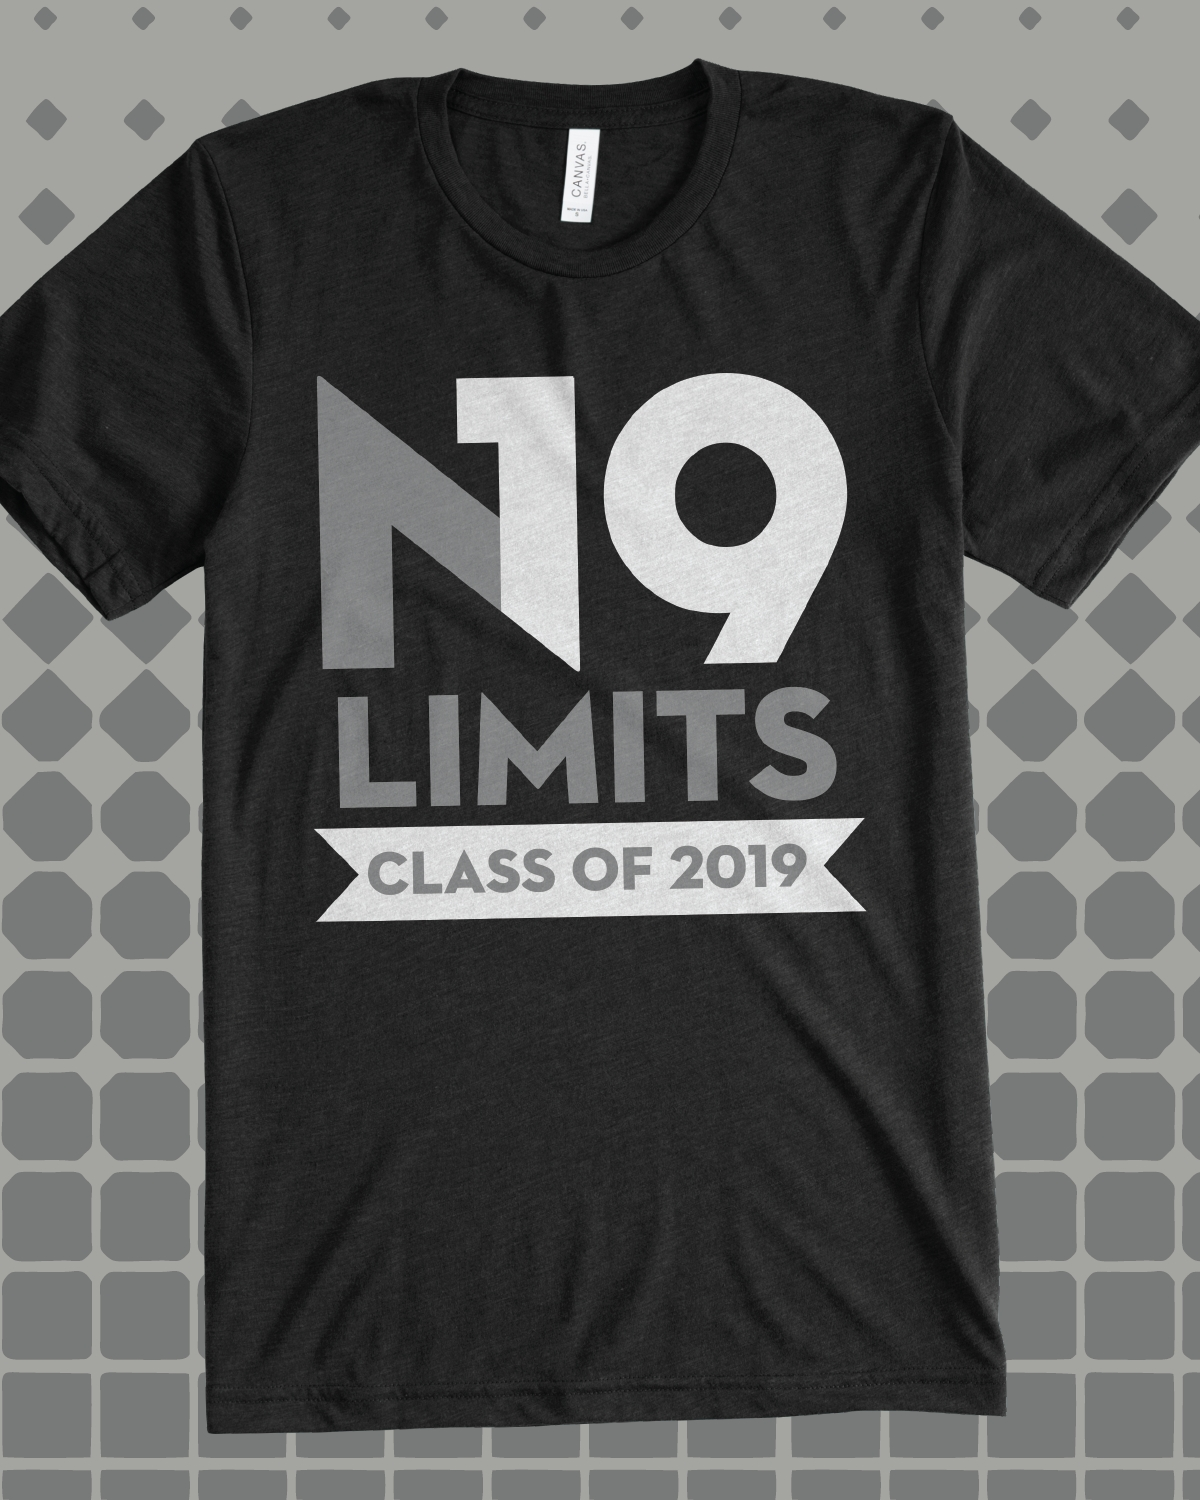 n19 limits class of 2019 class shirt - design idea for custom shirt